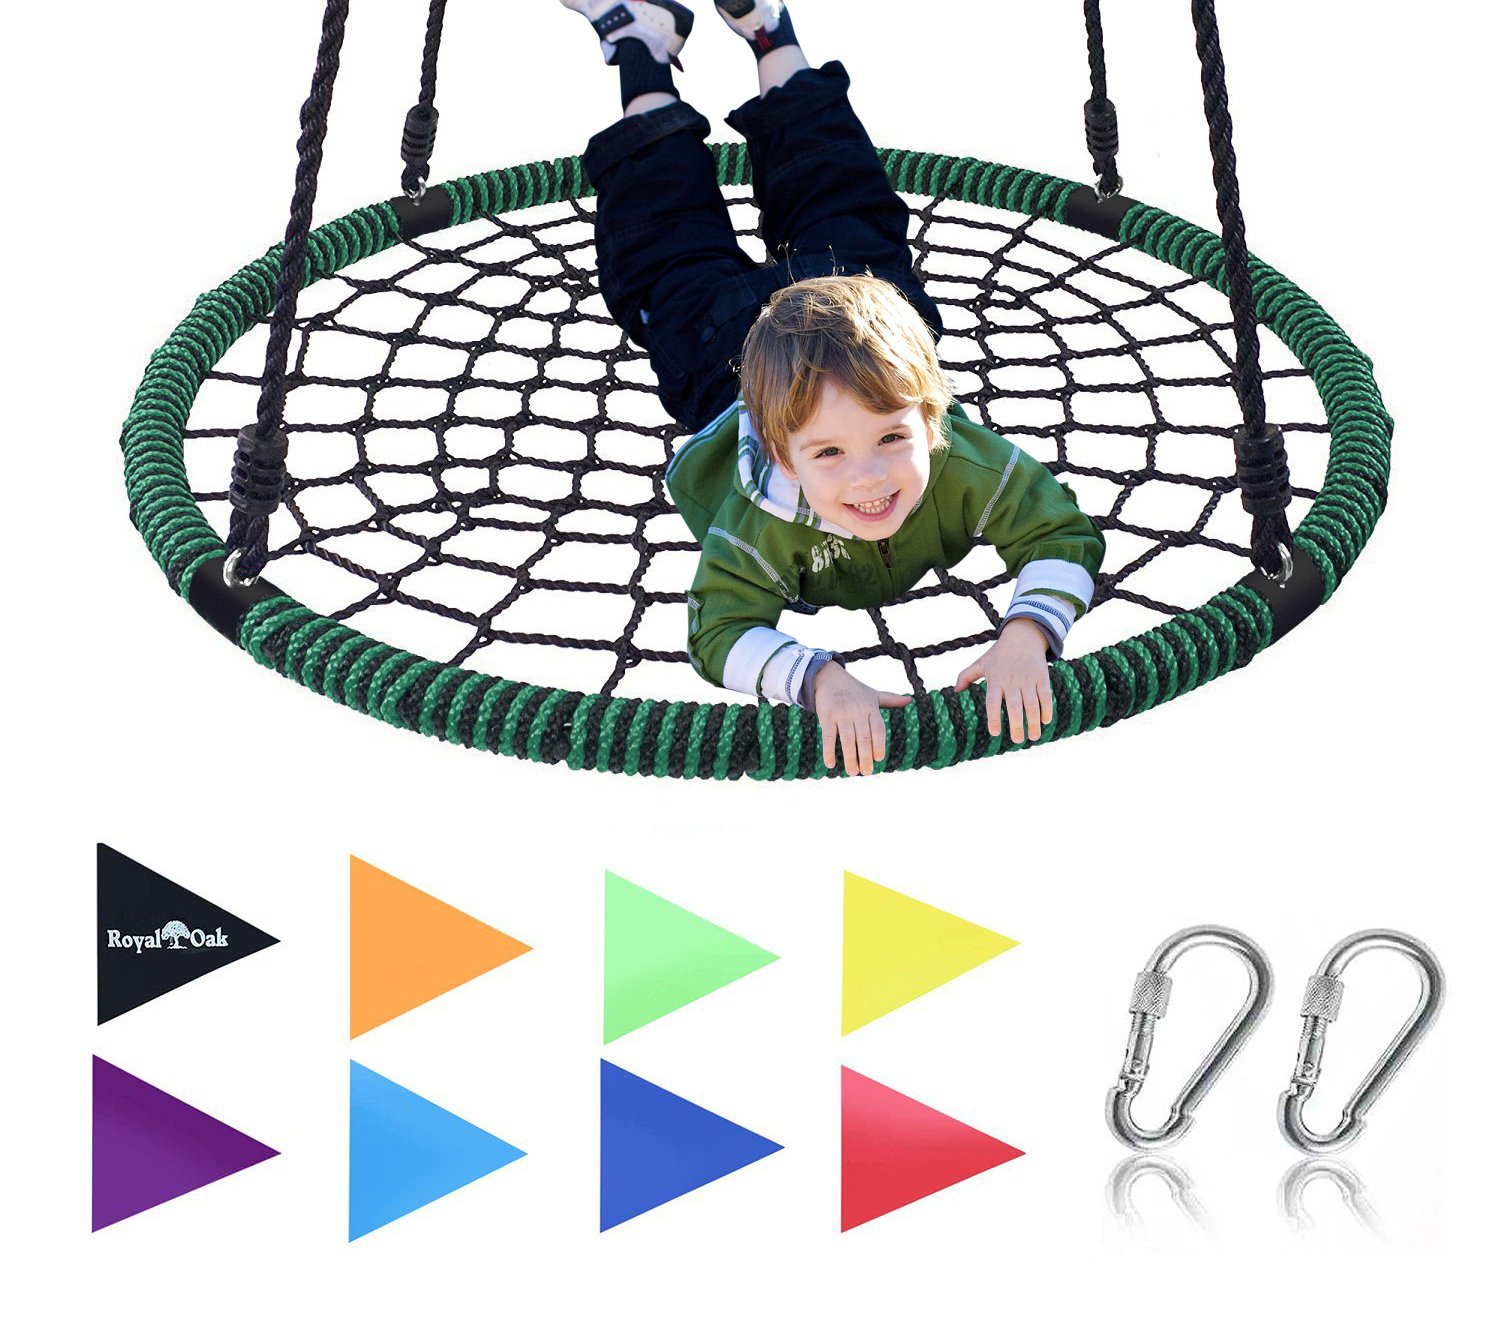 Royal Oak Giant 40'' Spider Web Tree Swing, 600 lb Weight Capacity, Durable Steel Frame, Waterproof, Adjustable Ropes, Bonus Flag Set and 2 Carabiners, Non-Stop Fun for Kids!